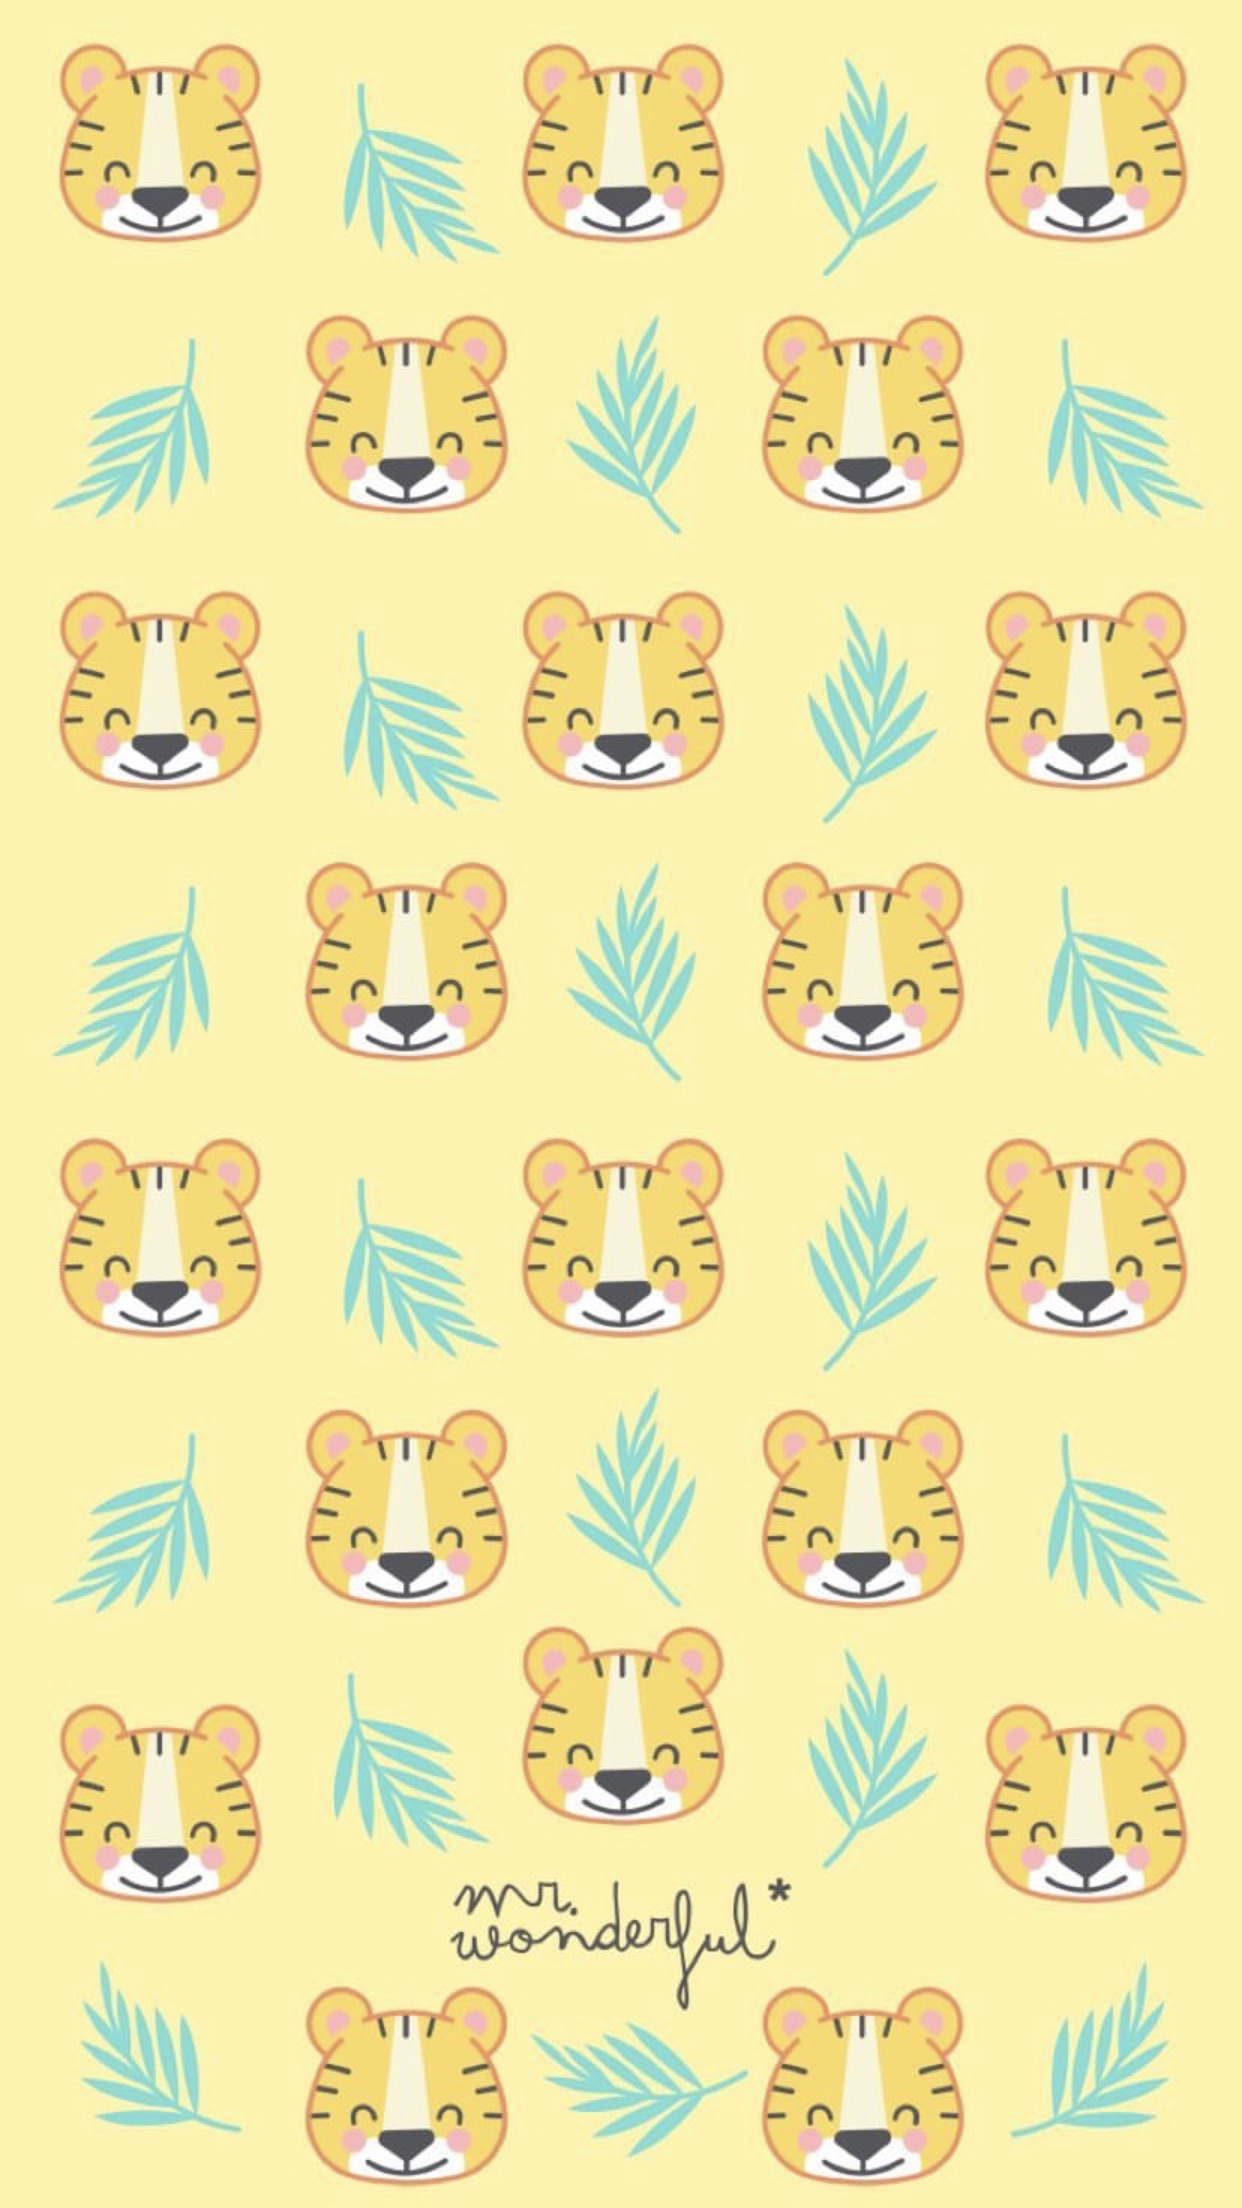 fondos de pantalla, fondo de pantalla, fondo de pantalla divertido, fondo de pantalla femenino, girly backgrounds, cool background, colorful backfround, fondo de pantalla patron, pattern, fondo de pantalla de tigres, tiger background.